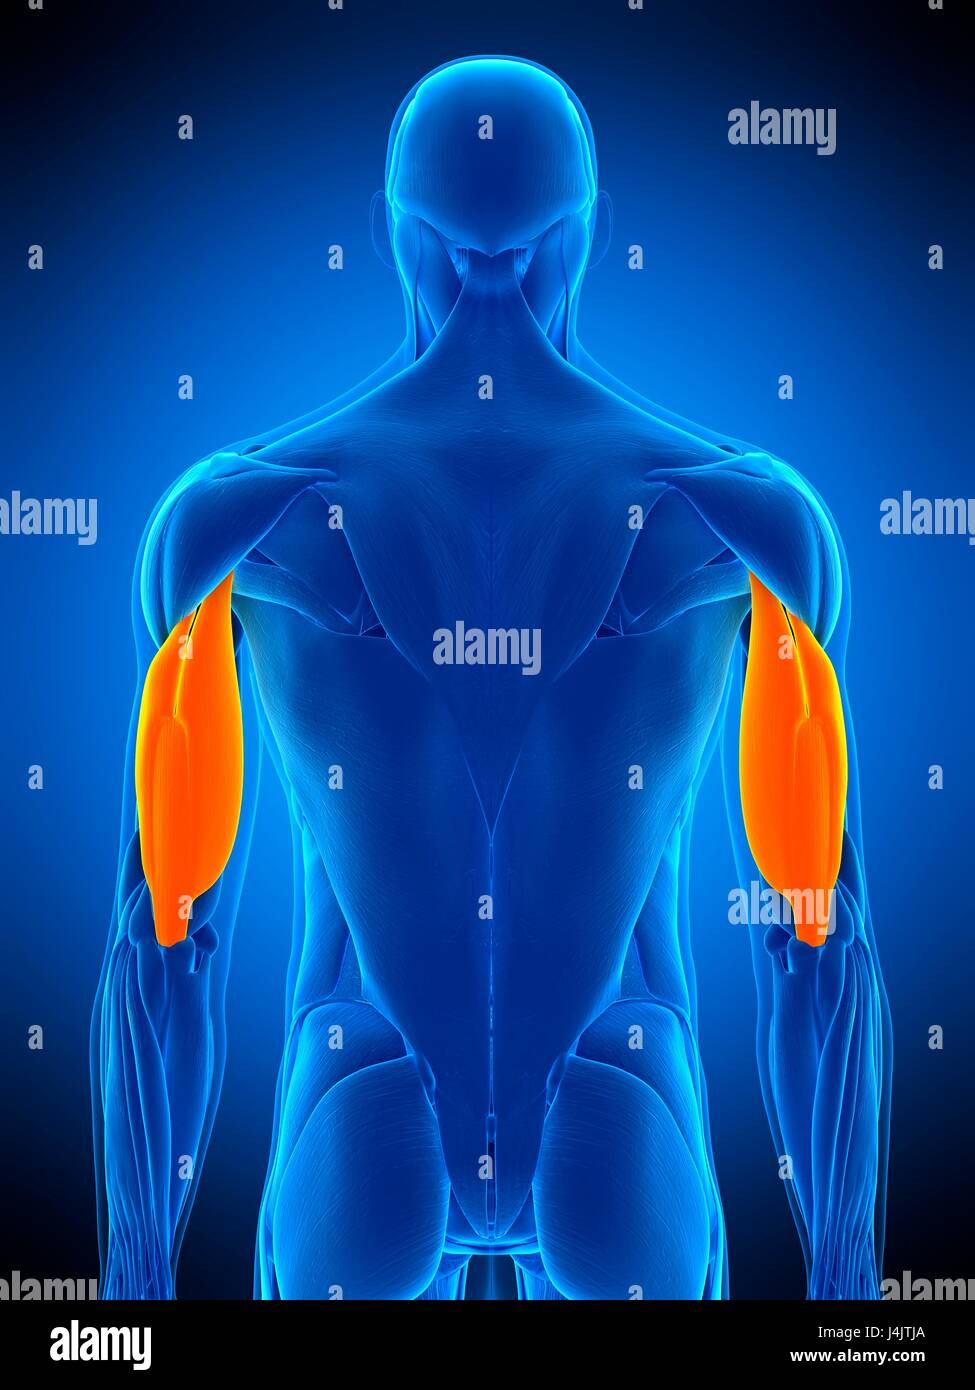 Illustration Of The Triceps Muscle Stock Photo 140556034 Alamy